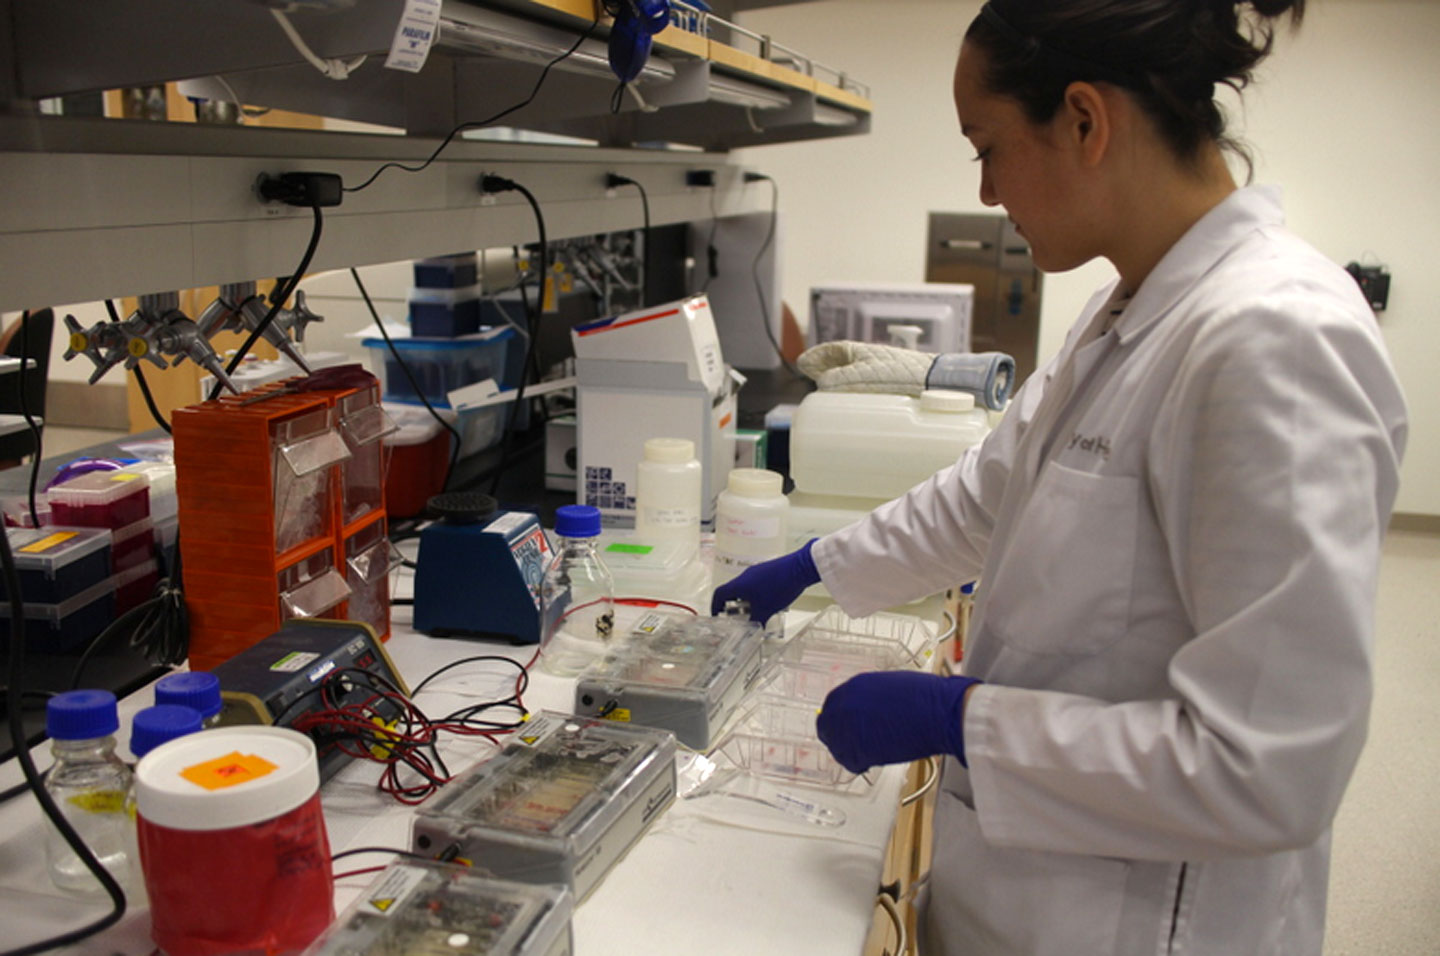 Research associate Sarah Wright uses a machine to help separate out different strands of DNA at a lab at City of Hope in Duarte, California.